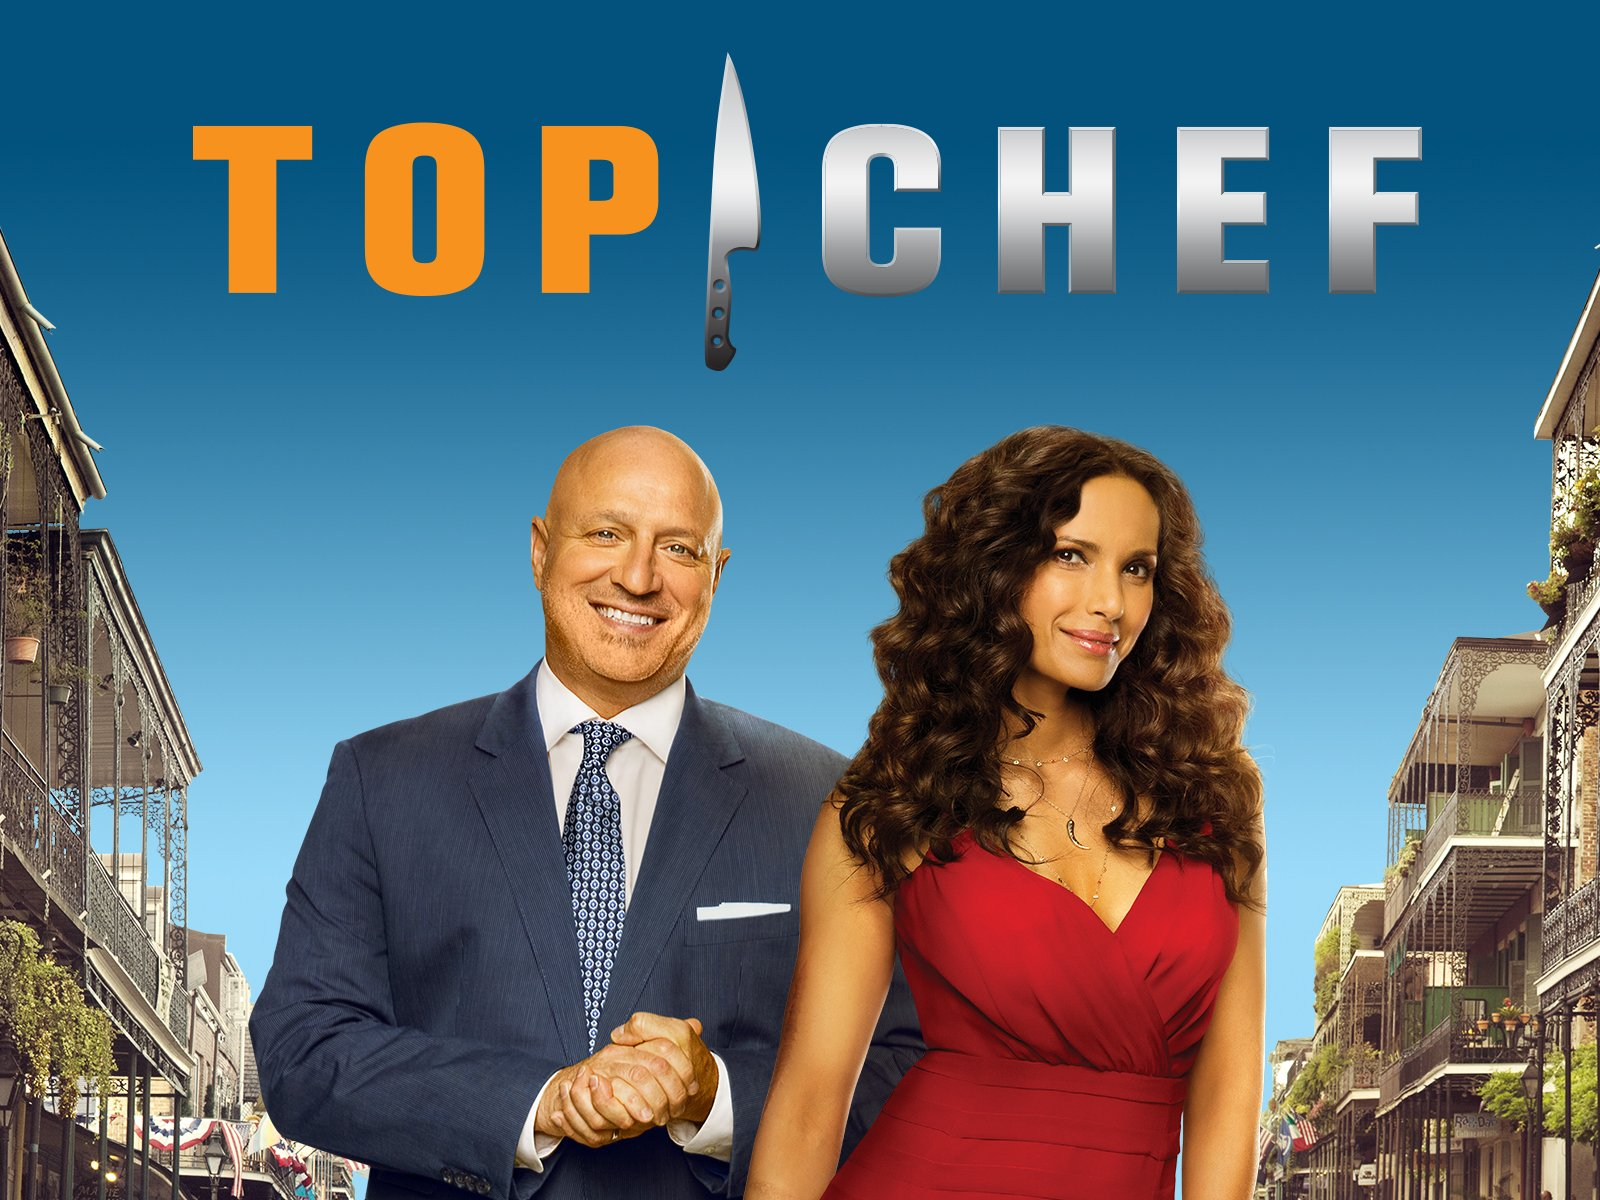 Amazon.com: Top Chef Season 11: Tom Colicchio, Gail Simmons, Hugh ...